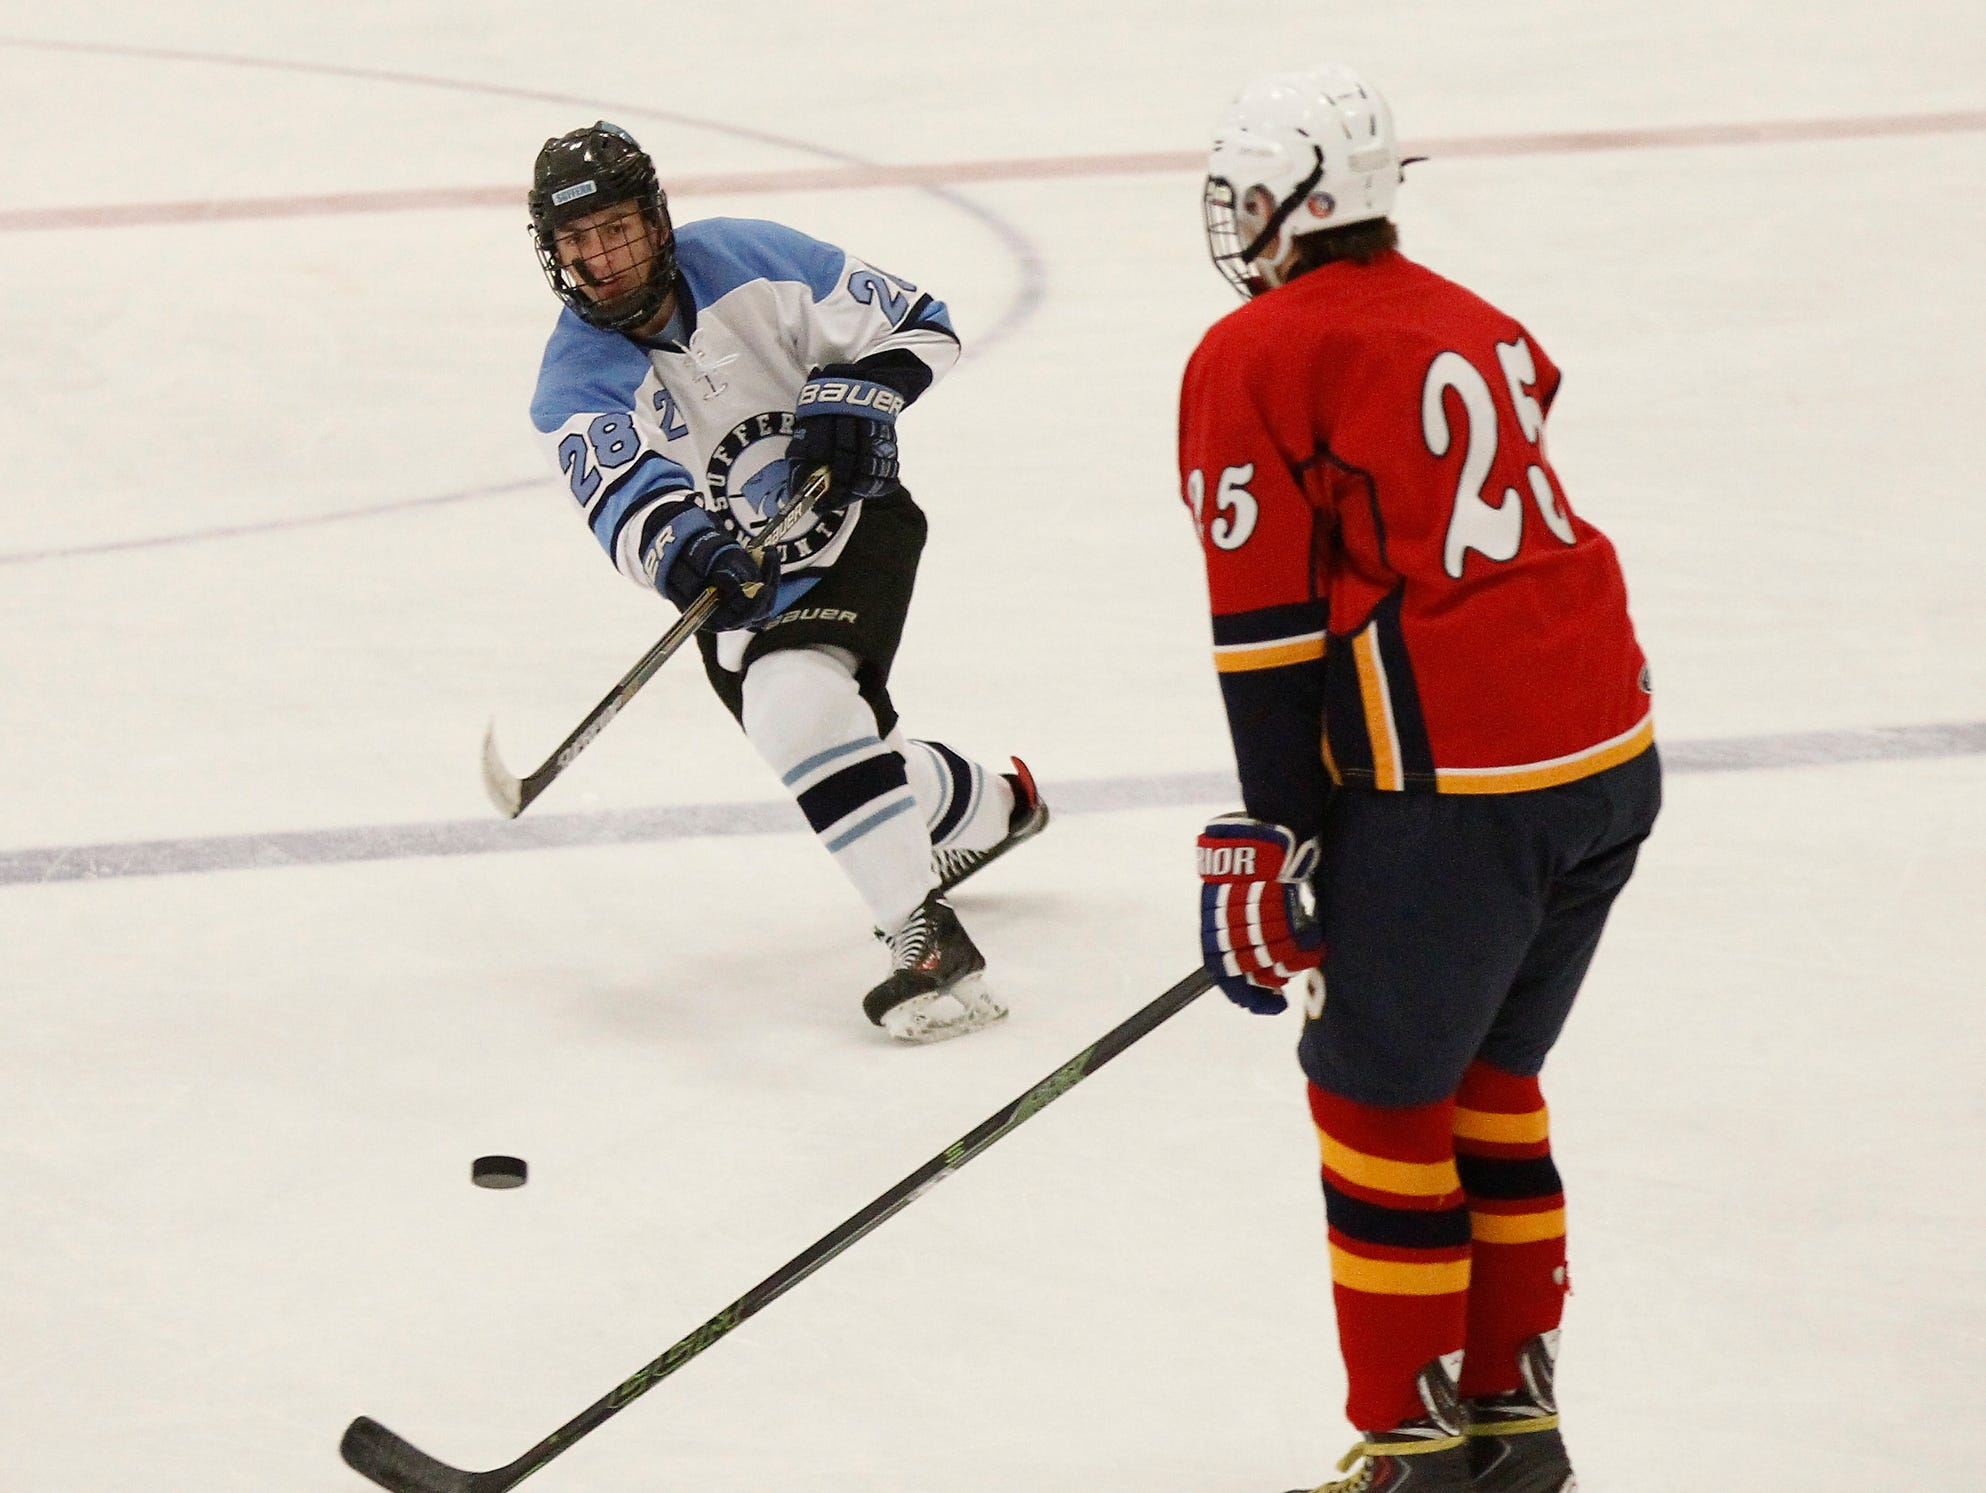 Suffern's Nick Vecchione (28) takes a shot from the red-line during a varsity ice hockey game at Sport -O-Rama in Monsey on Saturday, Nov. 28, 2015.